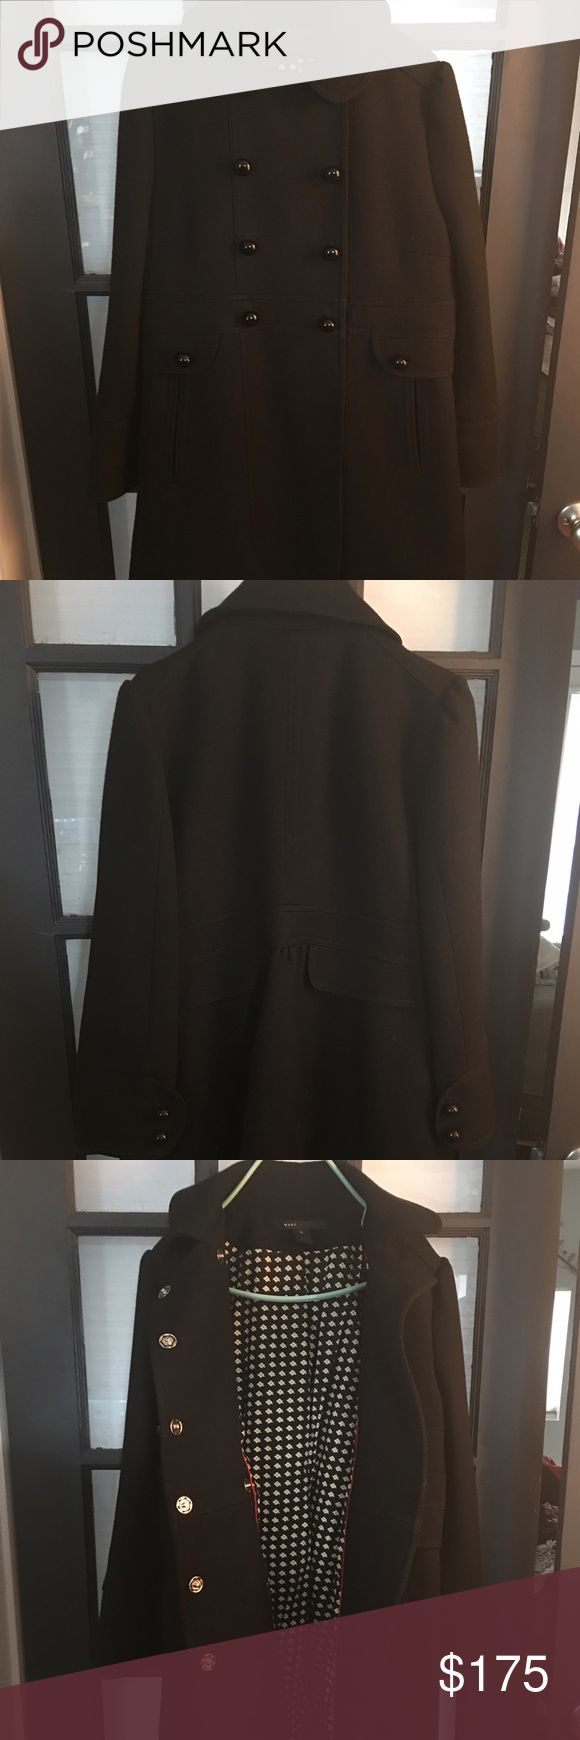 Marc Jacobs peacoat Marc Jacobs Black wool peacoat-  size L Marc Jacobs Jackets & Coats Pea Coats